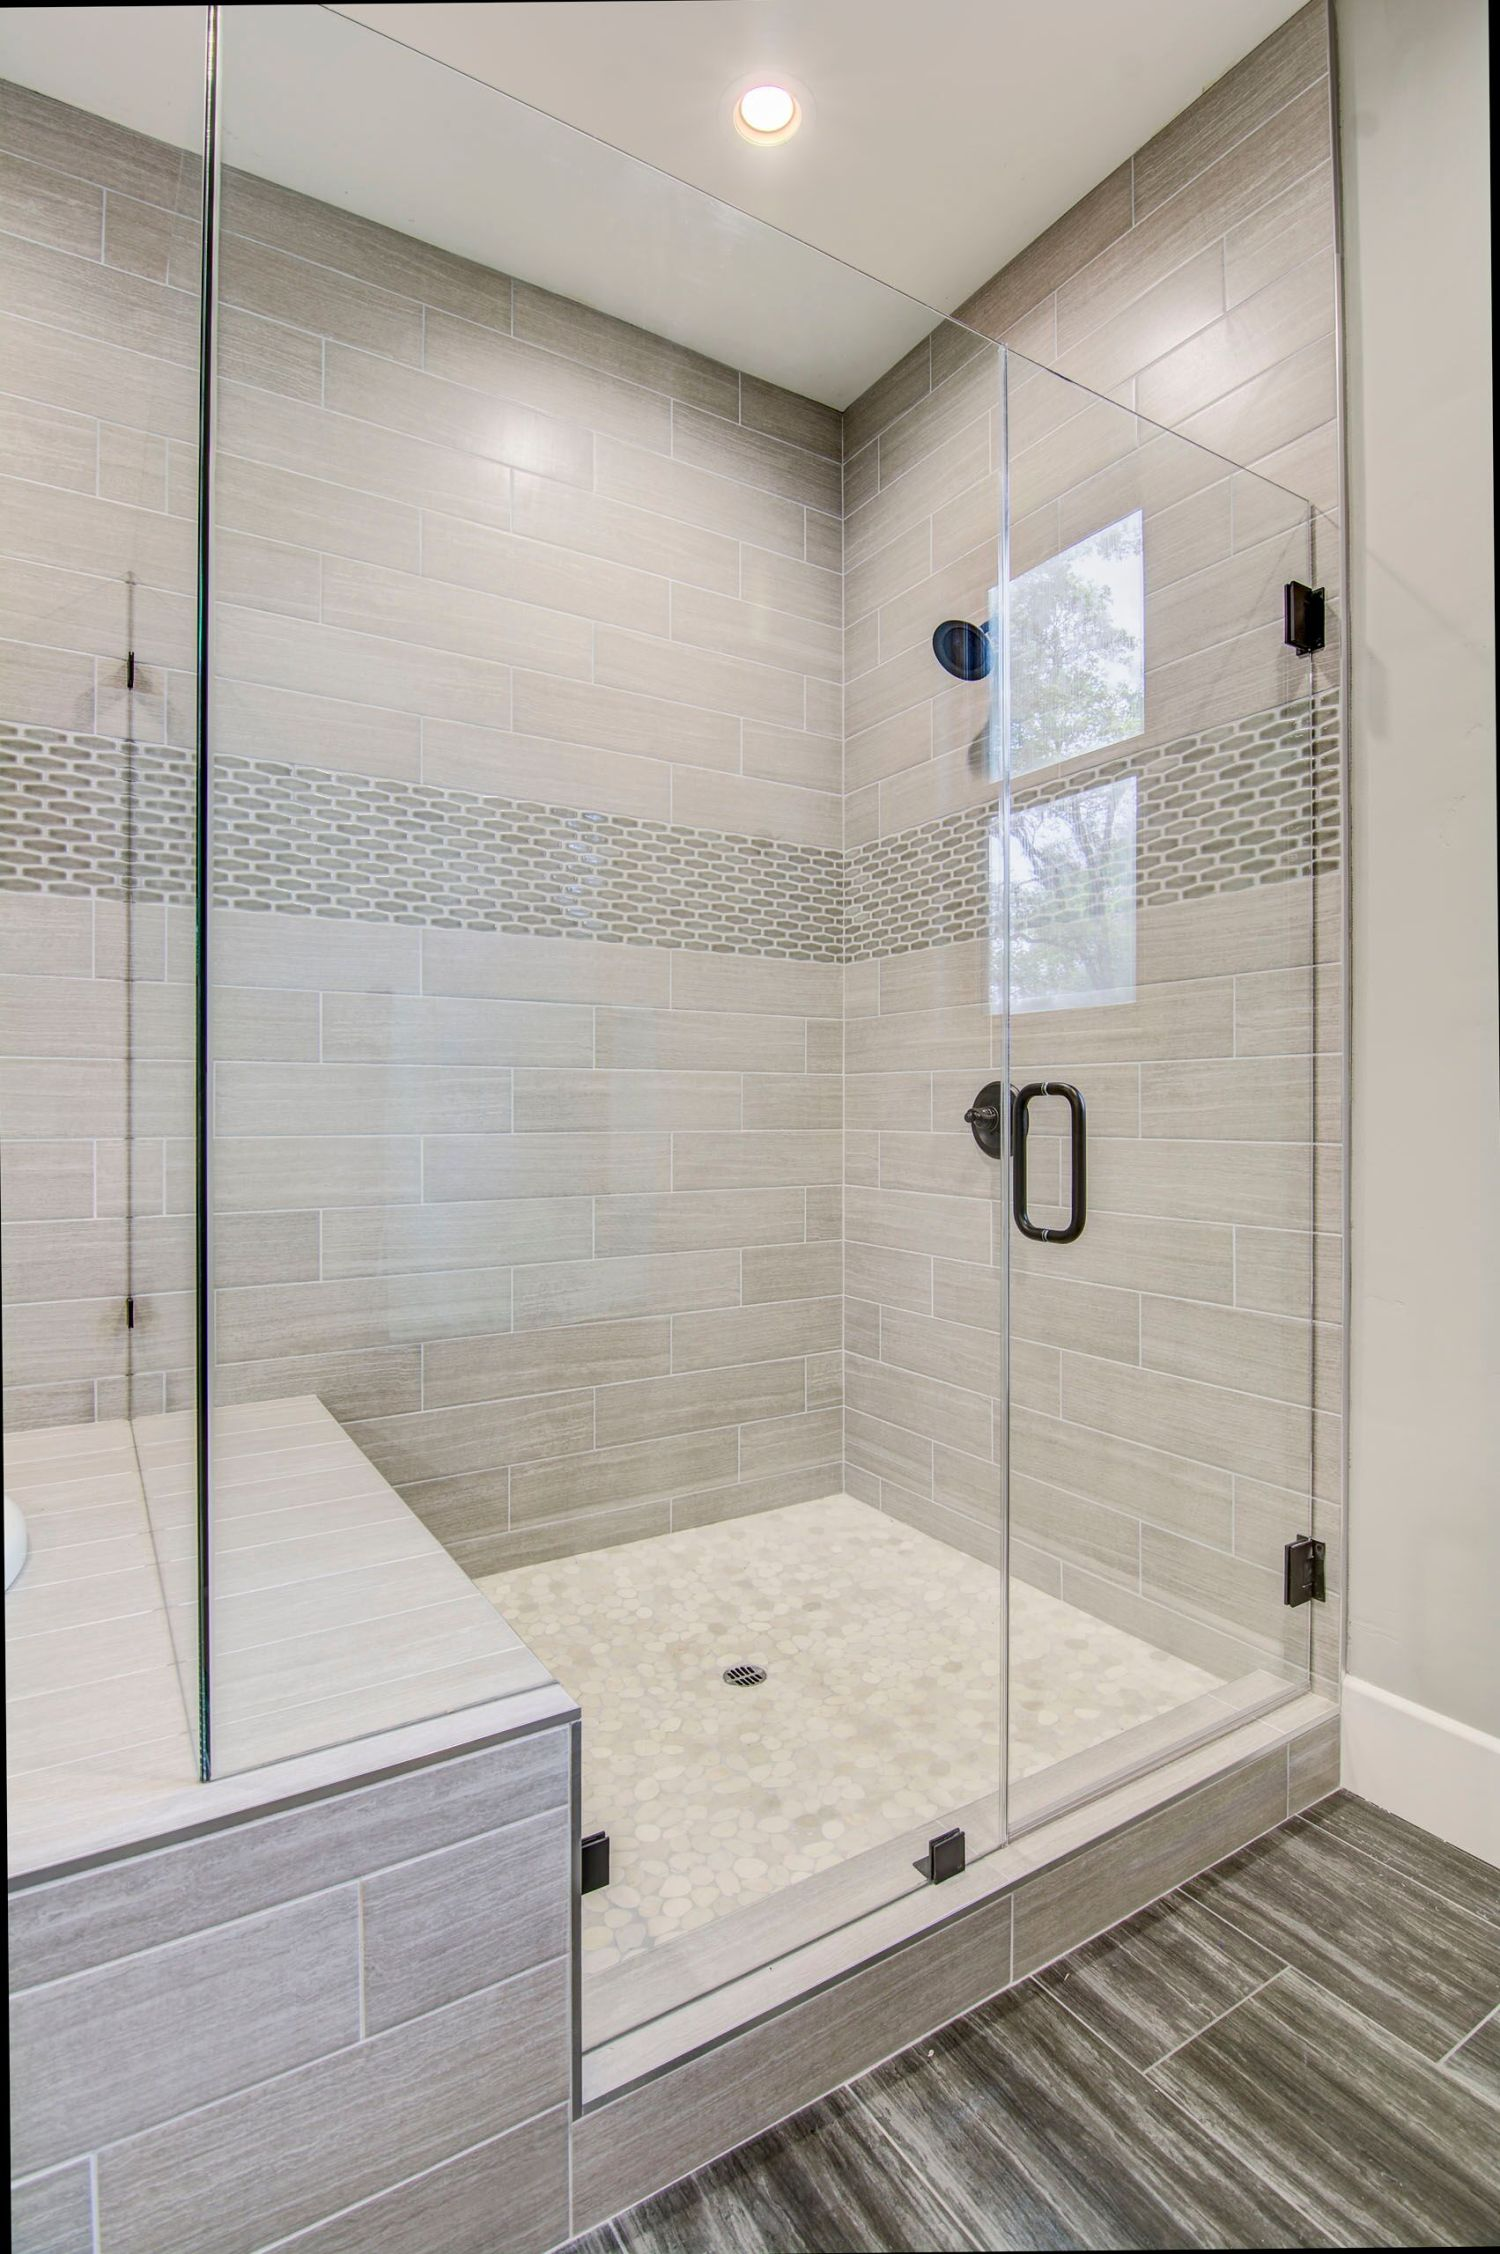 Blissful Baths: Shower Remodeling Ideas for a Beautiful ... on Remodeling Ideas  id=16360